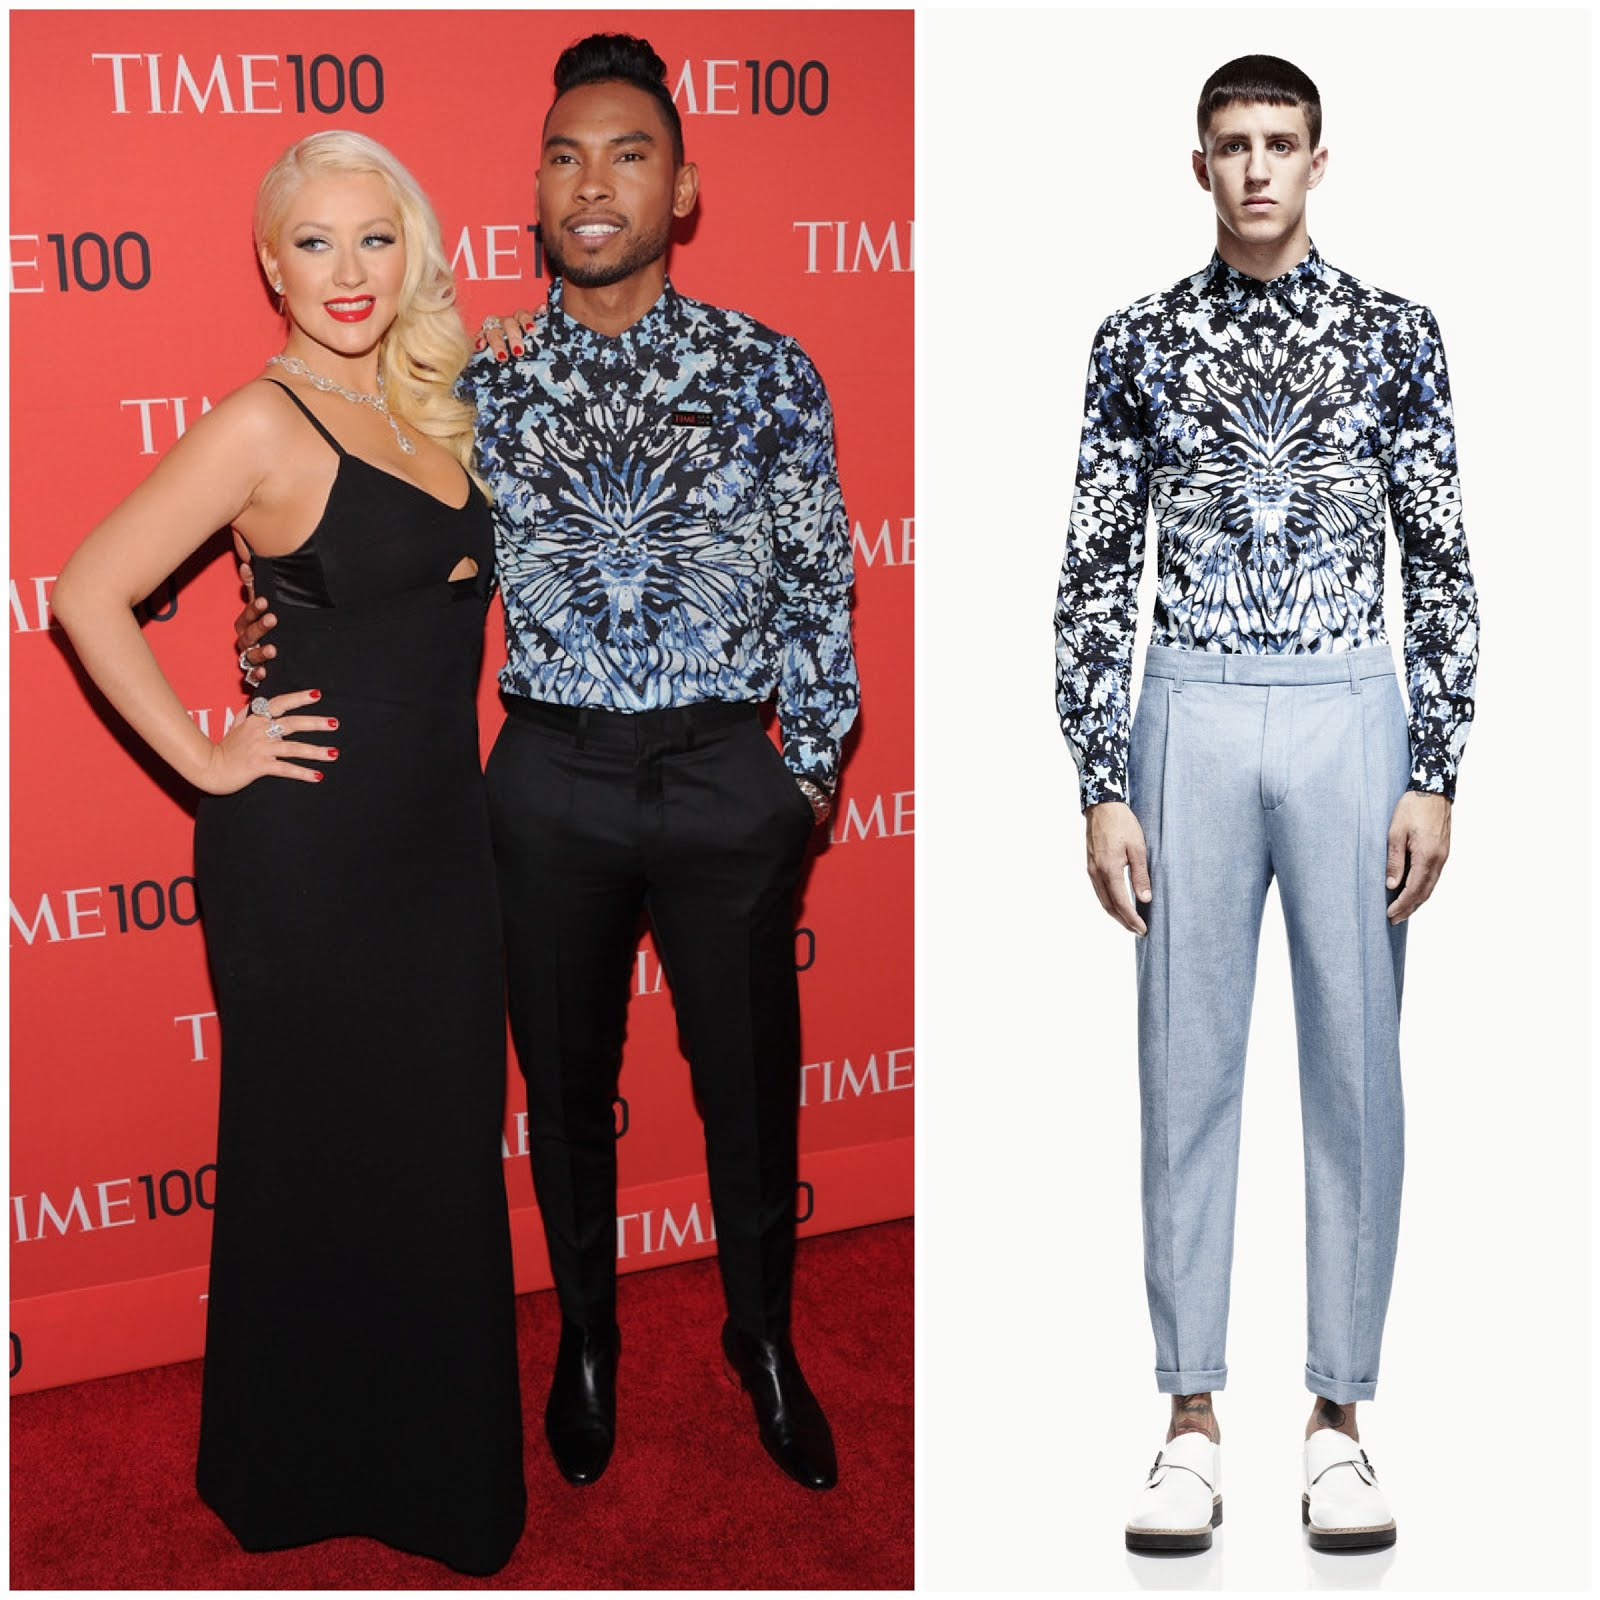 00O00 Menswear Blog Miguel in McQ Alexander McQueen (@WorldMcQueen) shirt and Saint Laurent cuban heels - 2013 Time 100 Gala